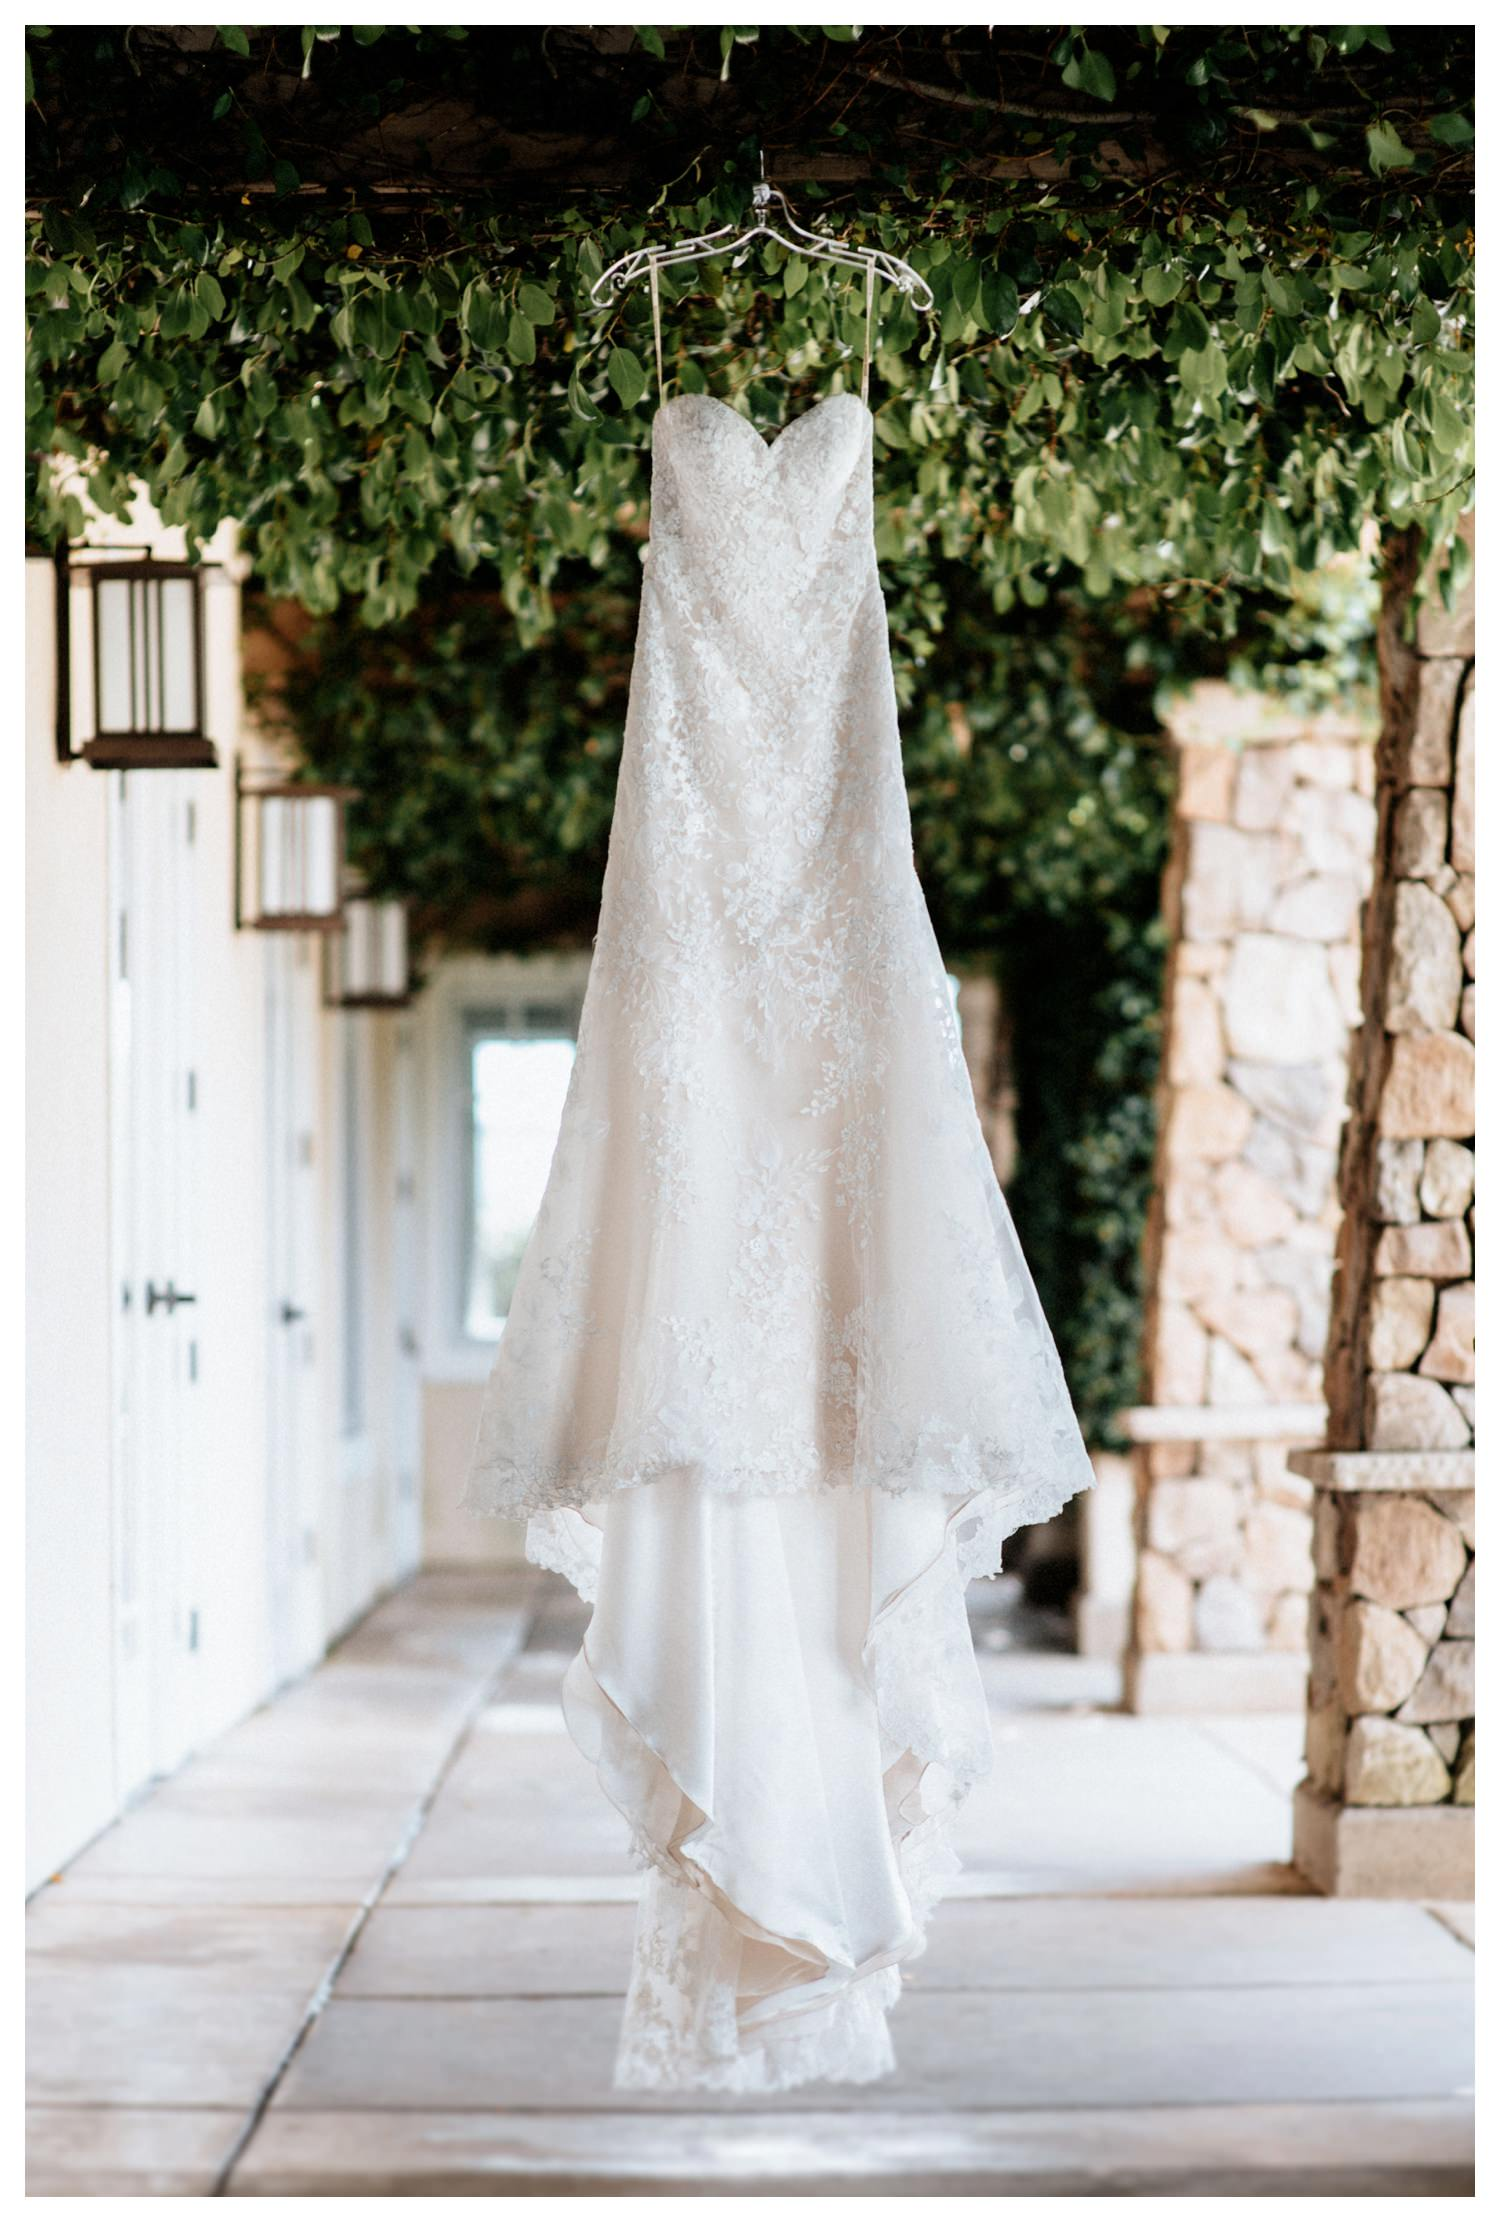 A wedding dress hangs in the breeze at Twin Oaks Golf course in San Marcos, CA